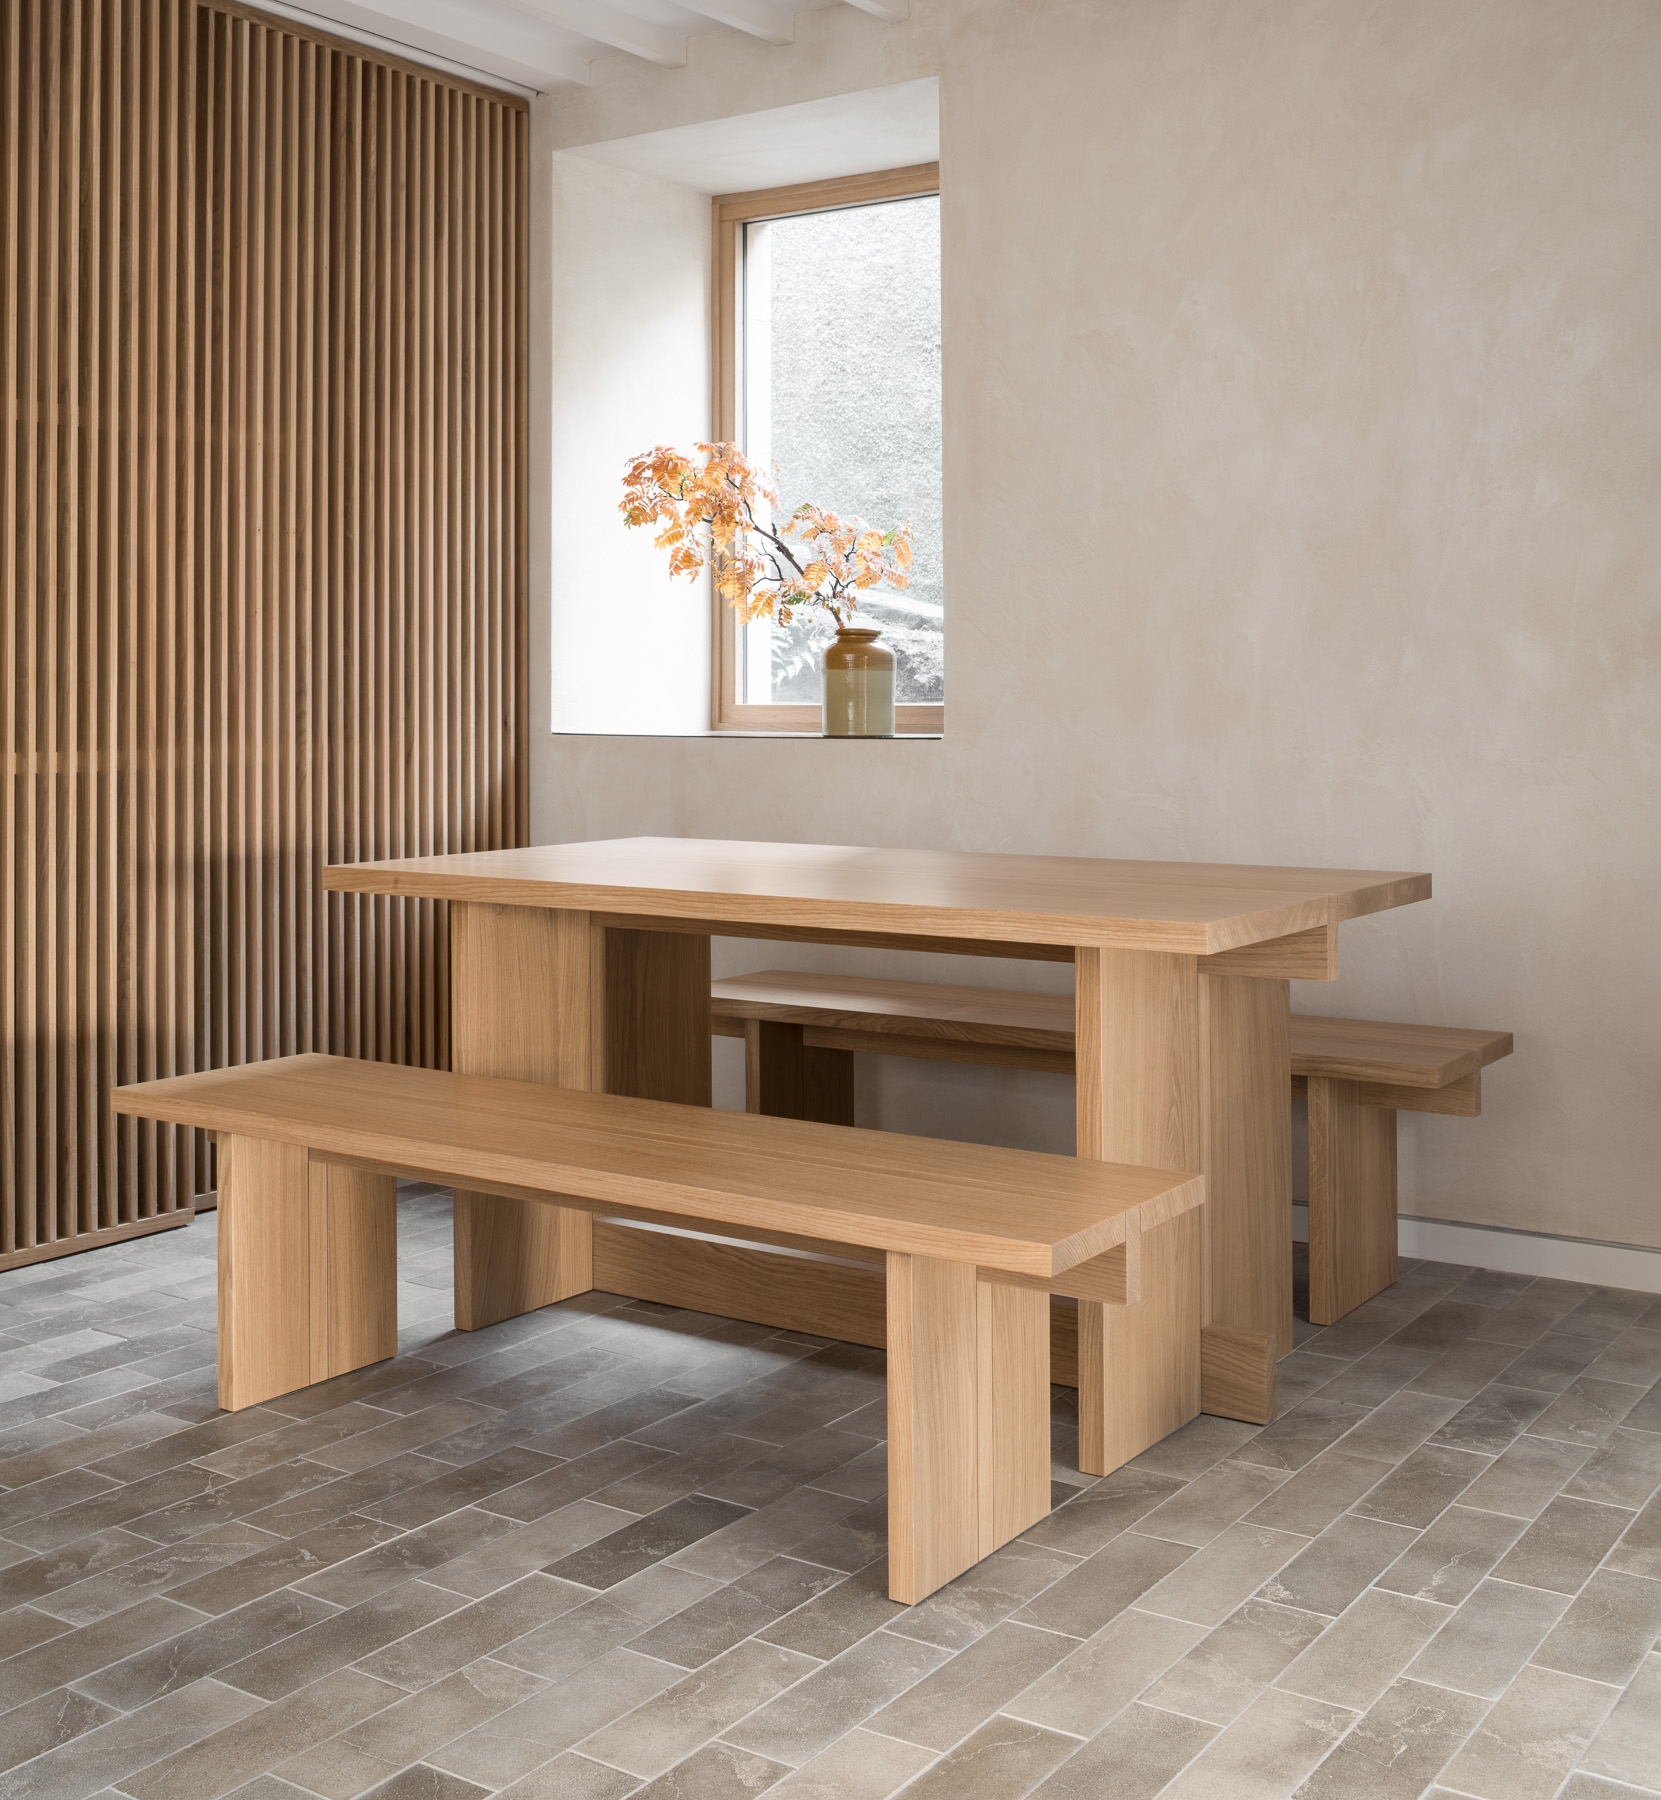 Porteous' Handmade Oak Dining Table and Benches